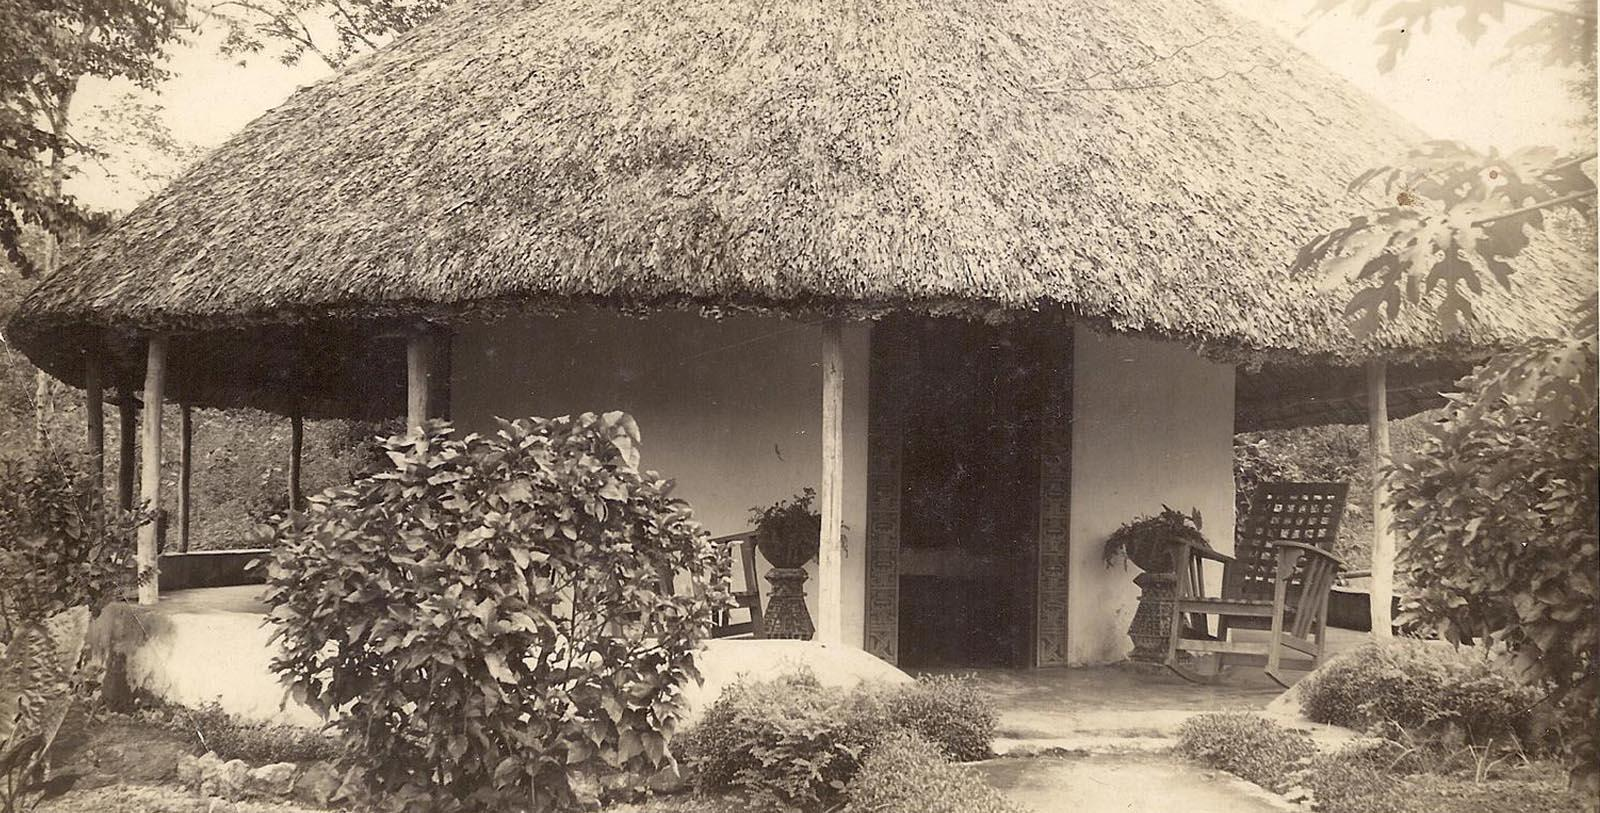 Historic Image of Hotel Mayaland Hotel & Bungalows,1923, Member of Historic Hotels Worldwide, in Chichen Itza, Mexico, Discover